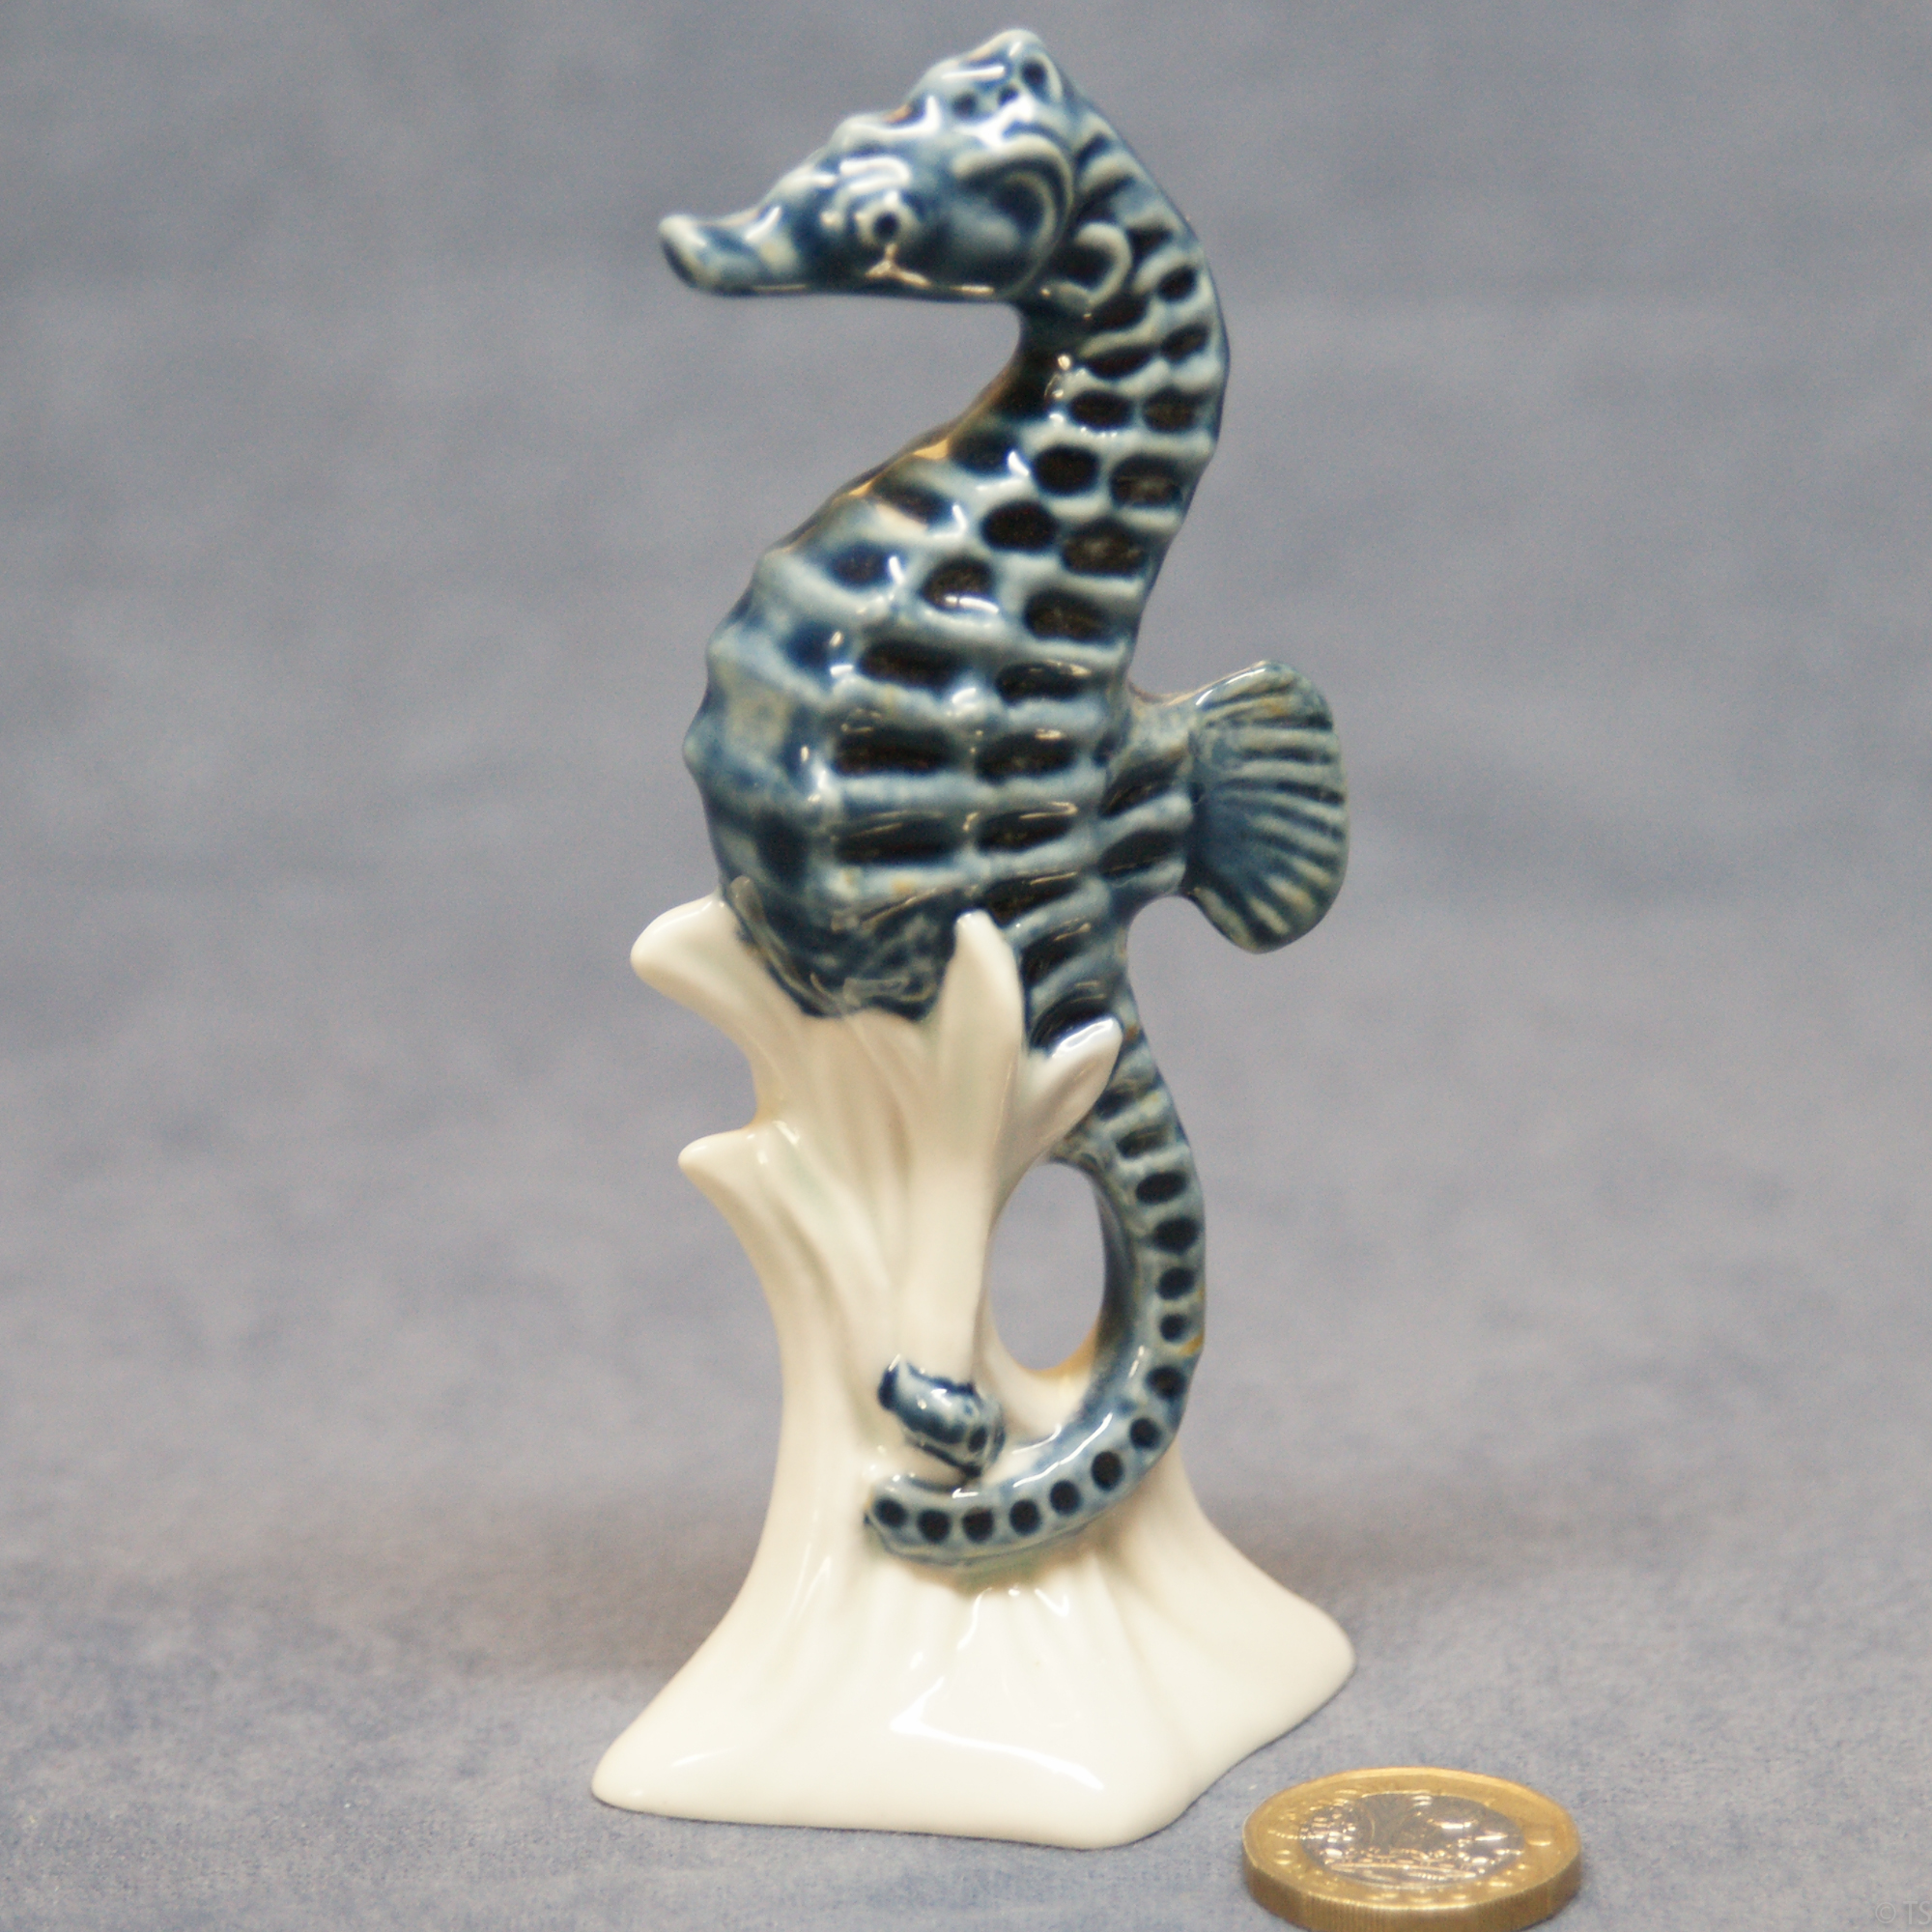 S162 - Medium Seahorse Blue Glazed